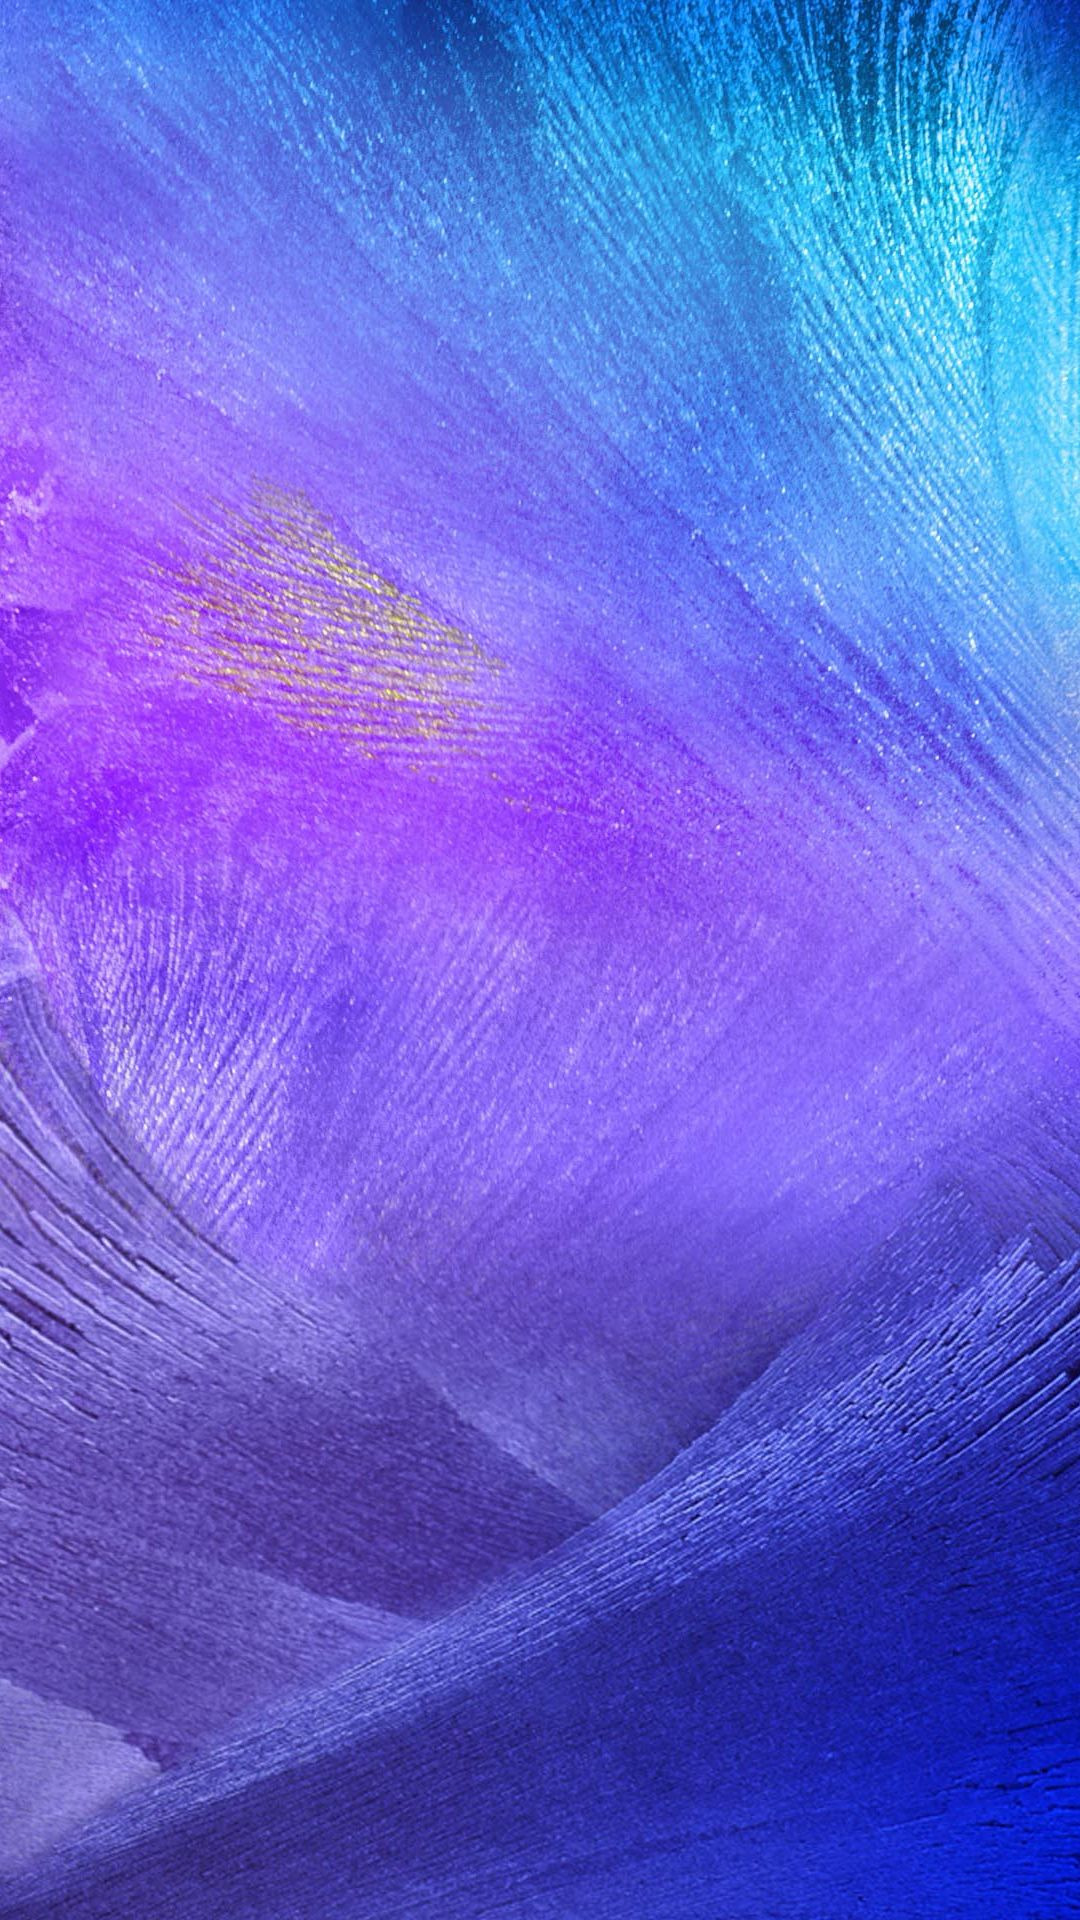 75 Creative Textures Iphone Wallpapers Free To Download Ombre